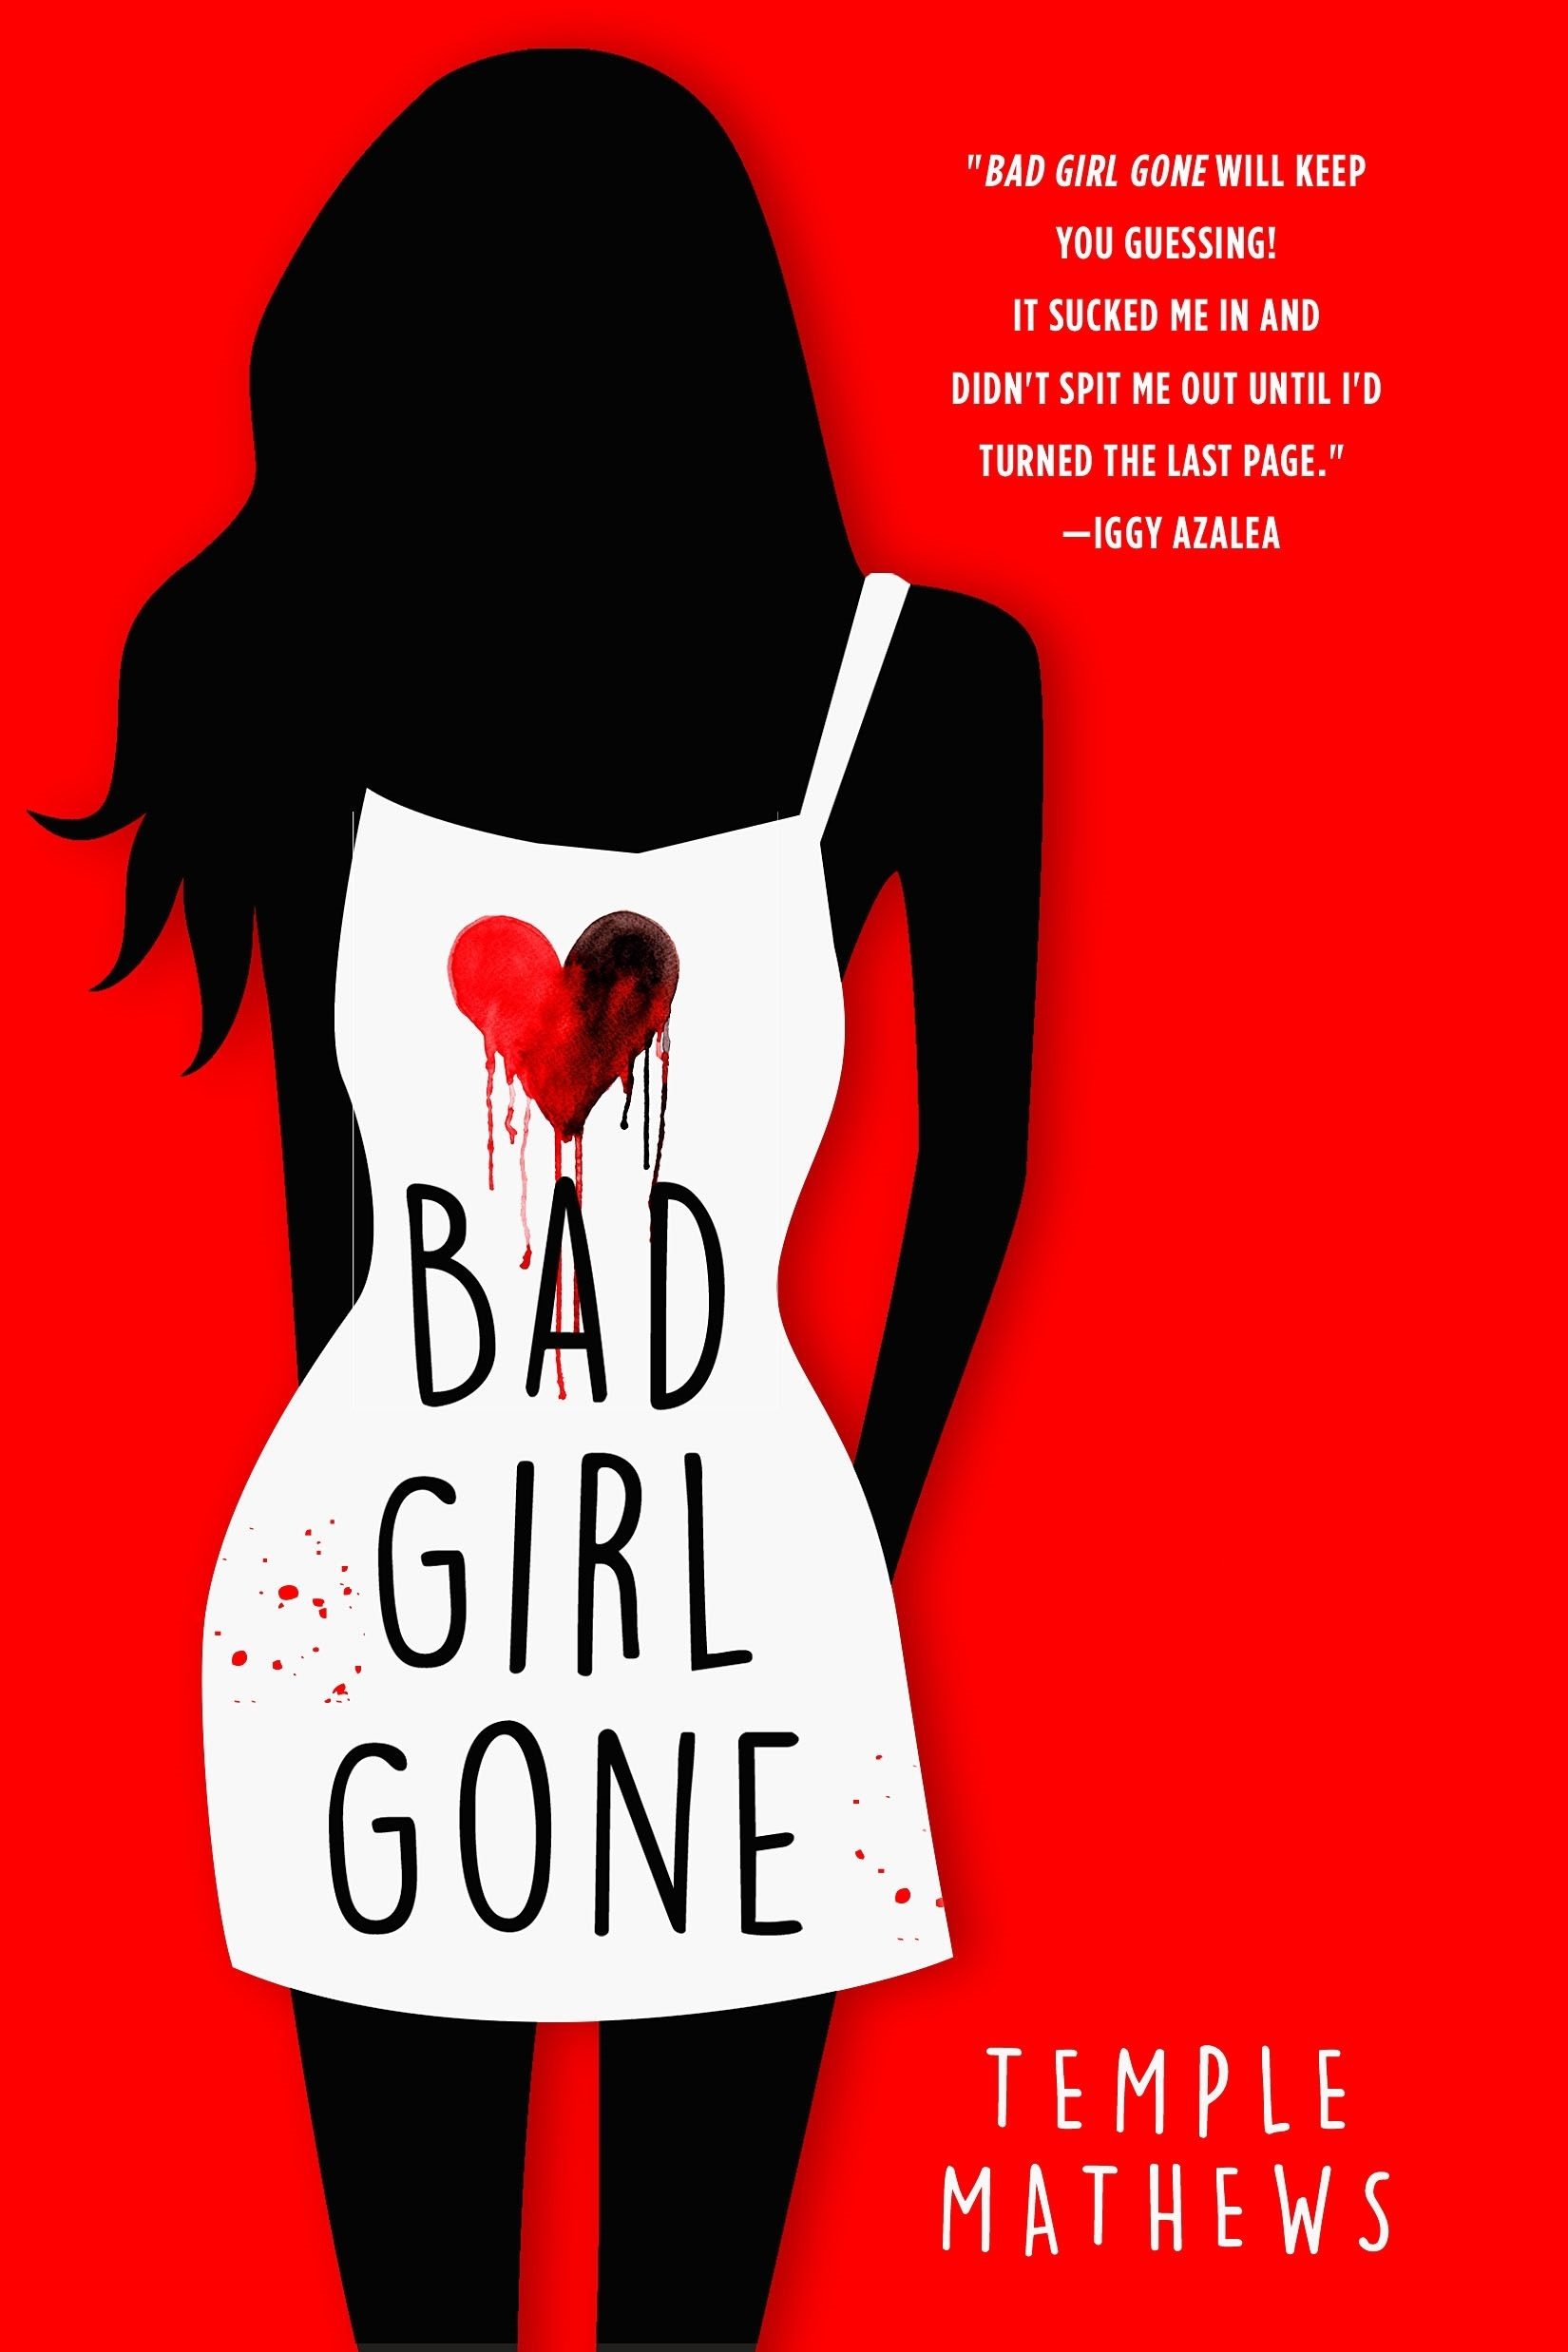 Blog Tour & Review: Bad Girl Gone by Temple Mathews